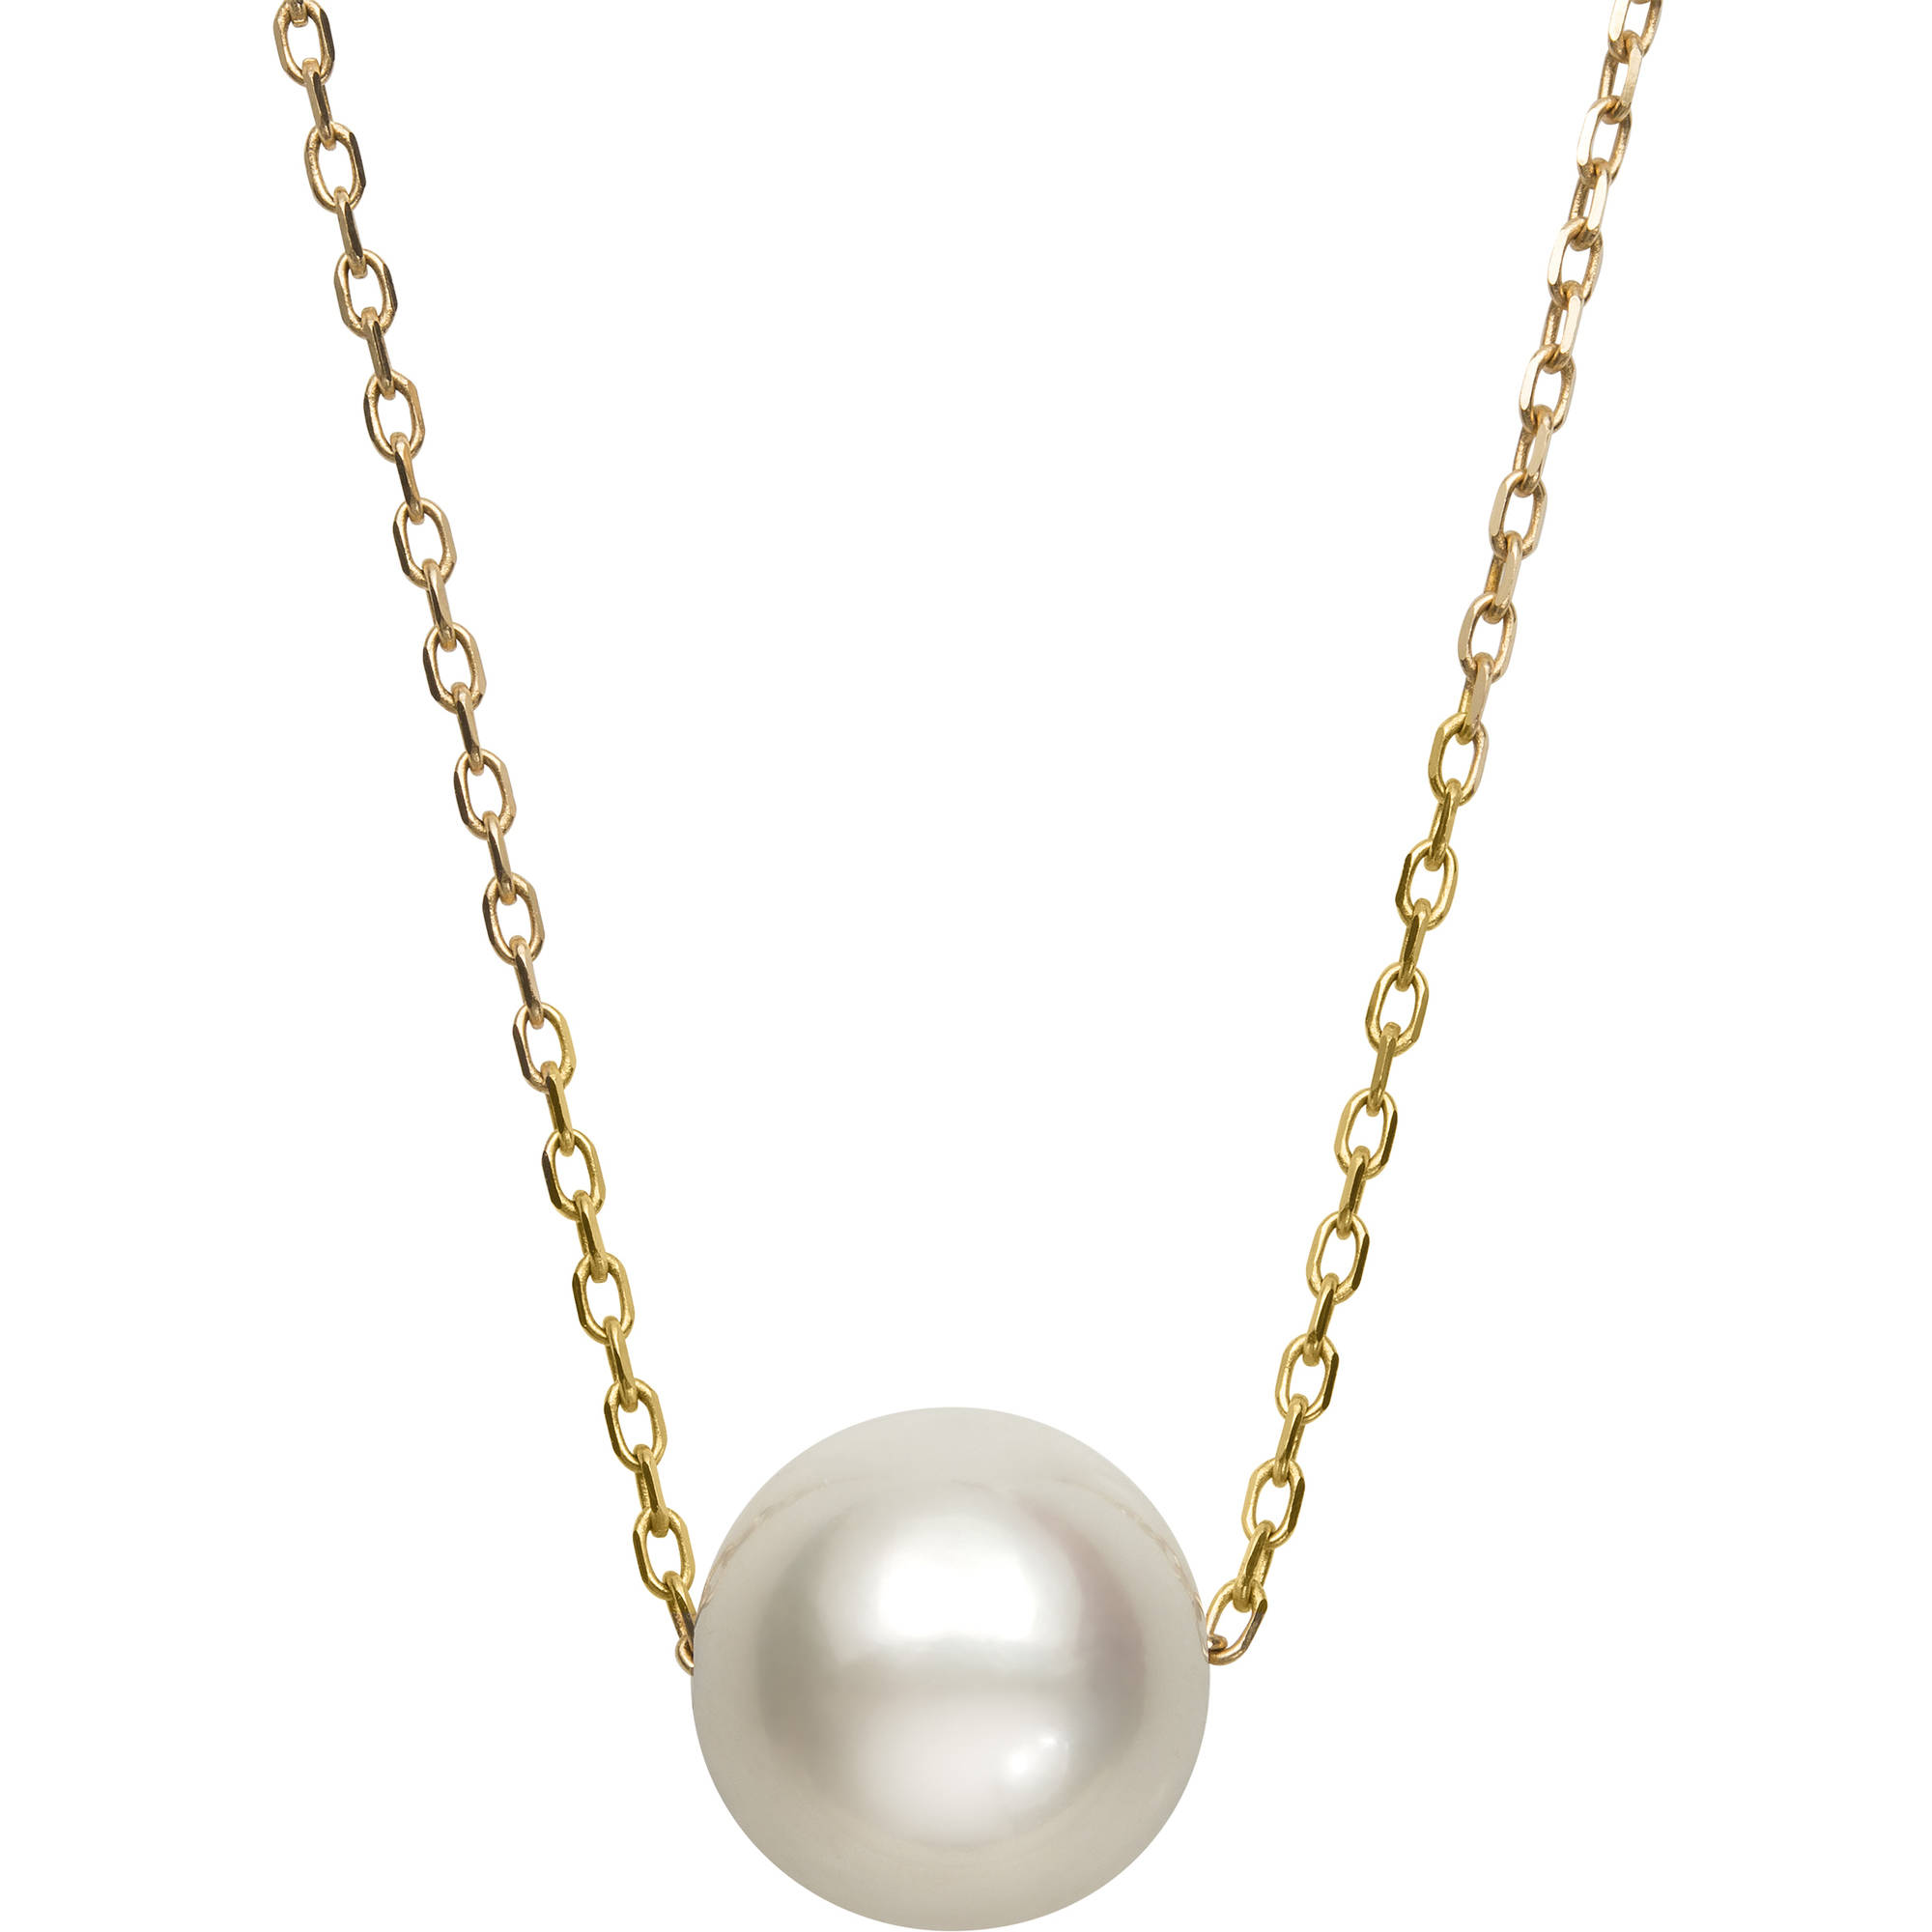 "8.5-9.5mm Single Cultured Freshwater Pearl 14kt Yellow Gold Necklace, 18"" by China Pearl"